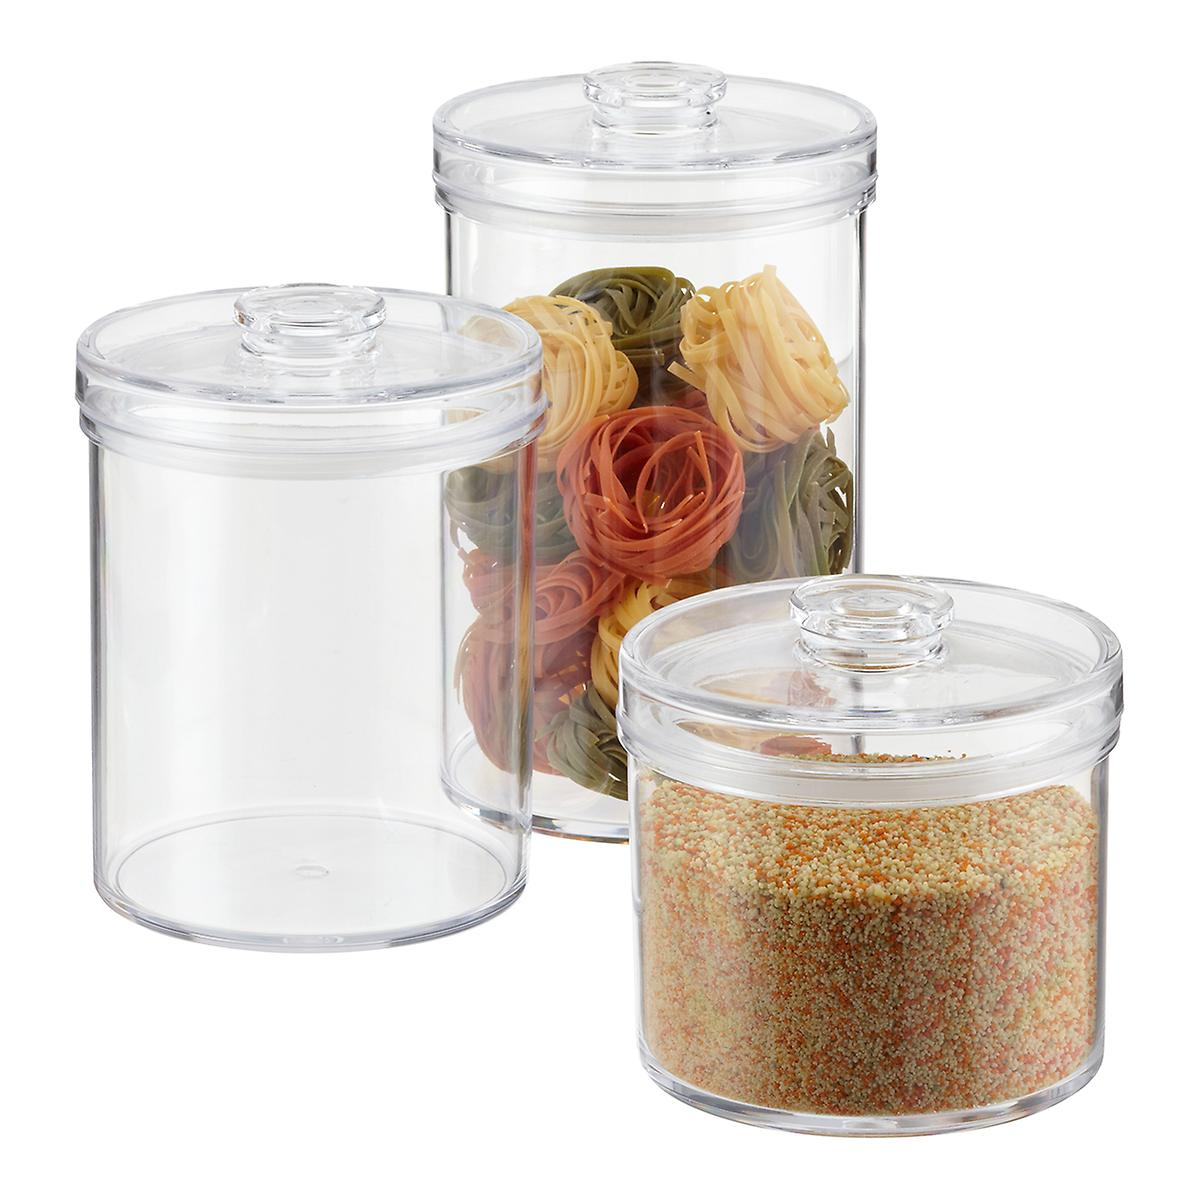 Clear Round Acrylic Canisters on clear stools for kitchen, spray paint a tray for kitchen, acrylic canister sets kitchen, clear canisters with lids, canister sets for kitchen, clear plastic kitchen canisters, clear canisters in food,